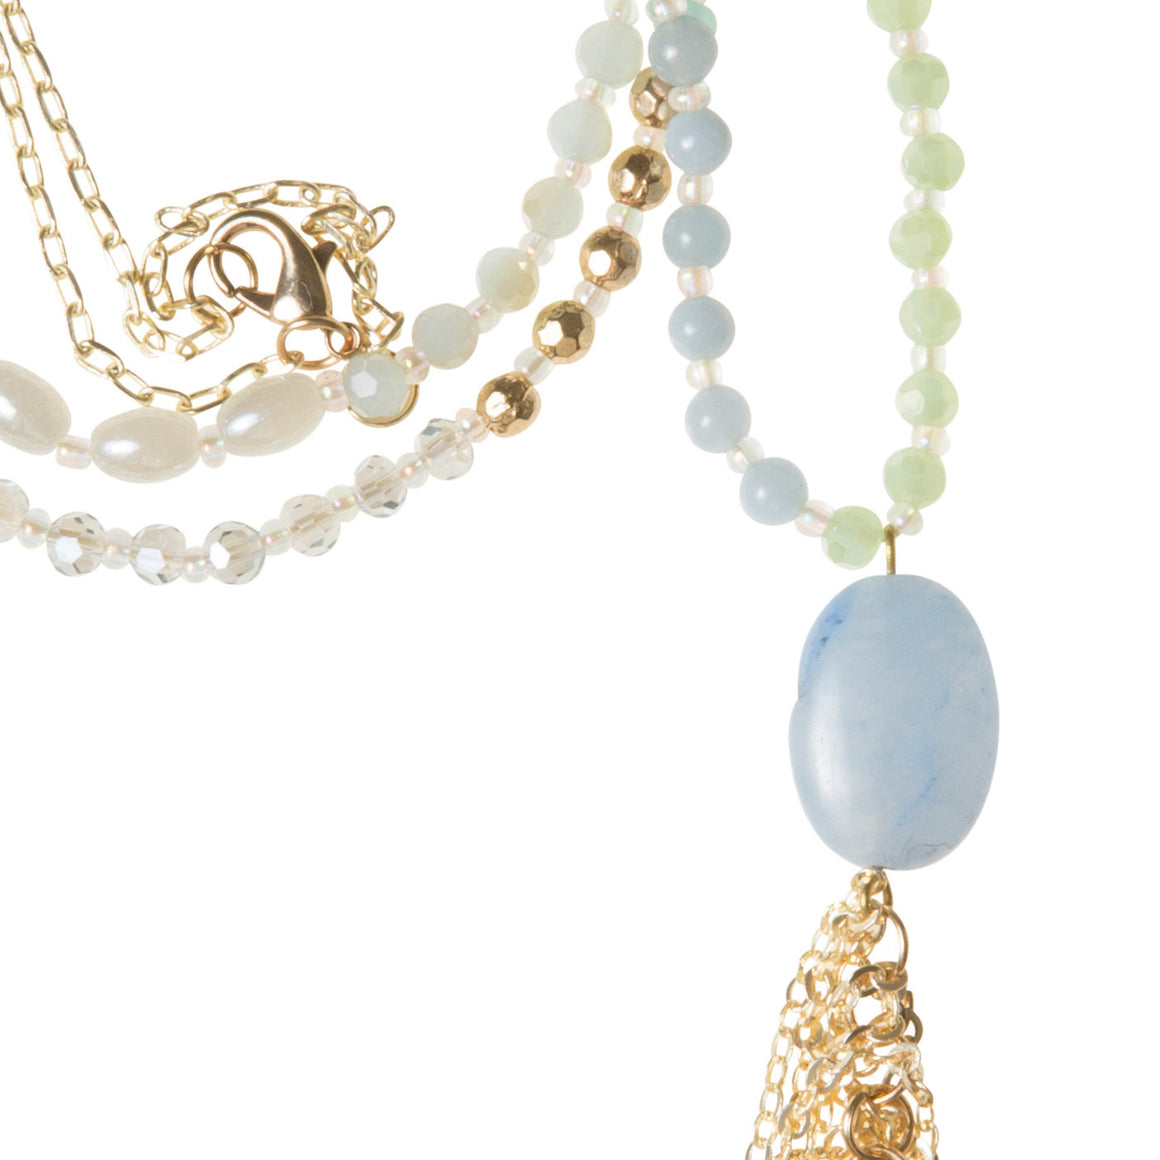 Daily Mala Necklace : mist/gold